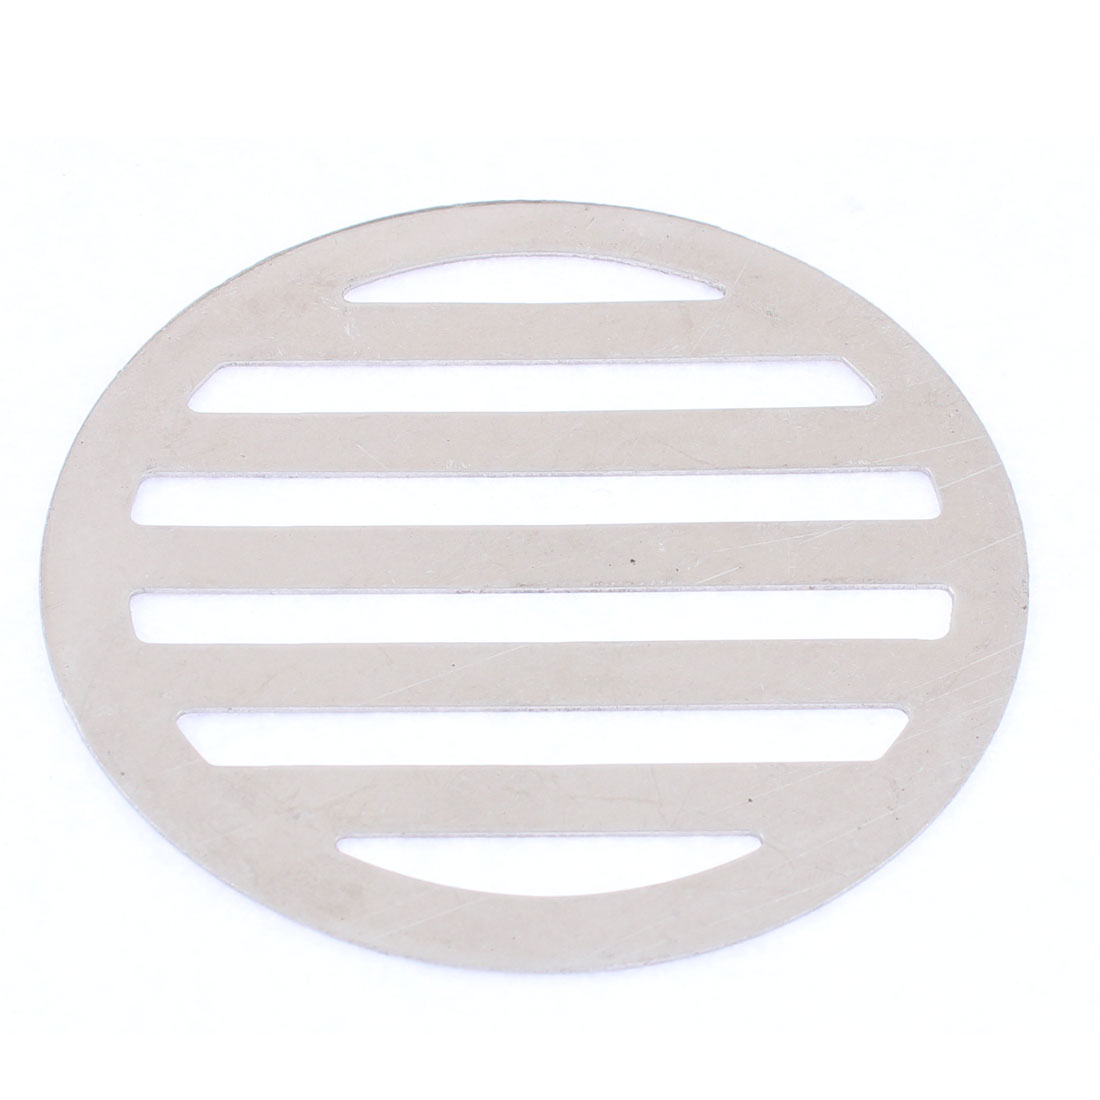 Home Bathroom 6 Holes Round Shaped Floor Drain Cover Sink Filter 8.6cm Dia